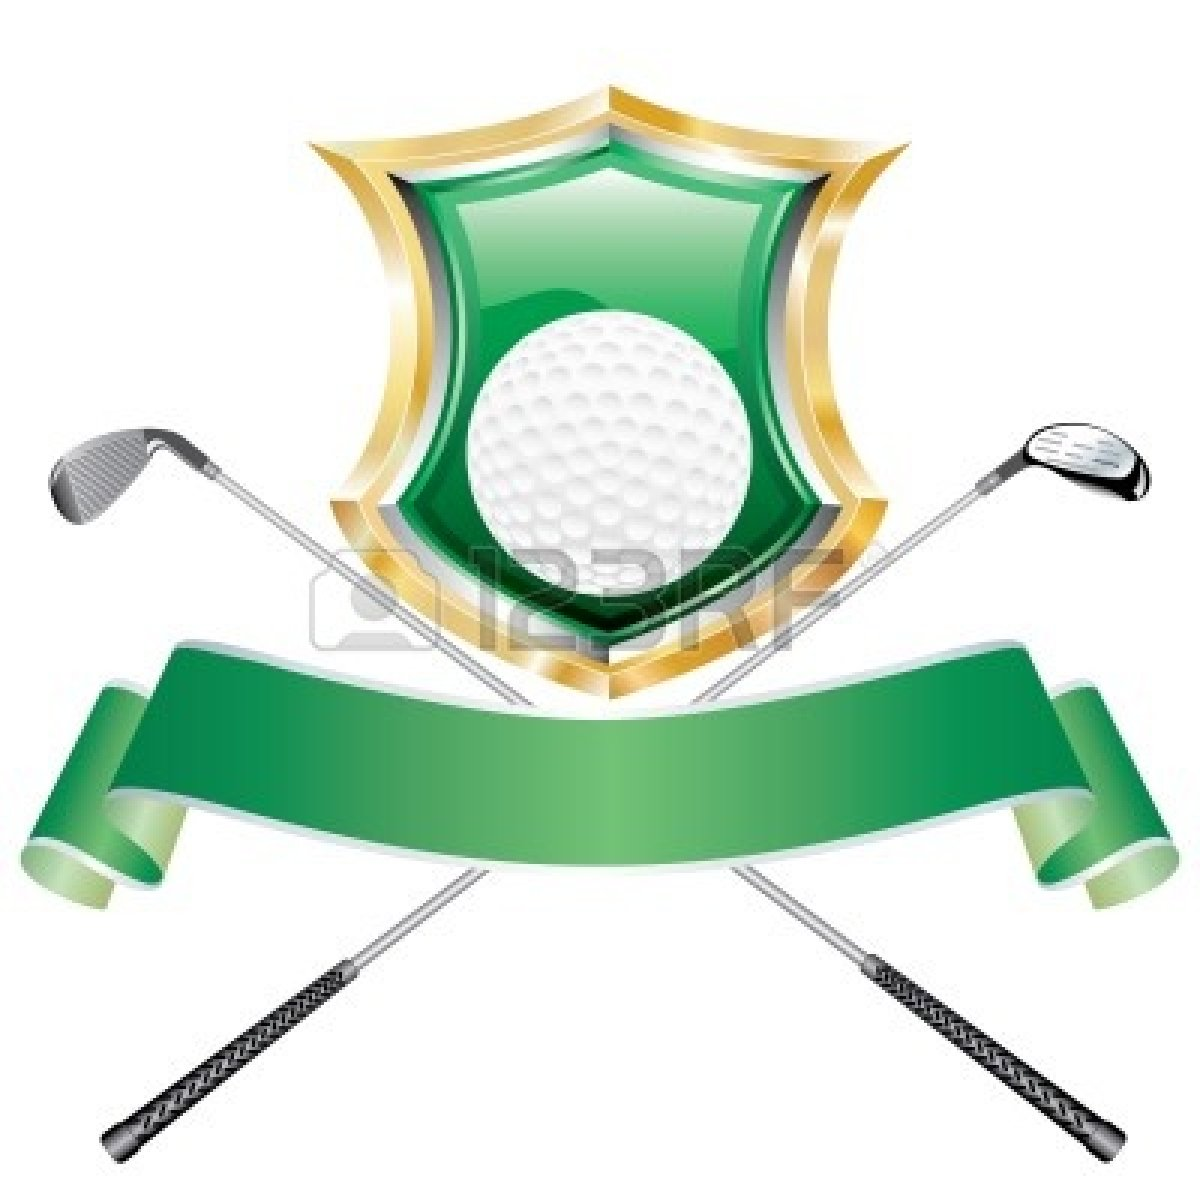 Golf clipart free download.